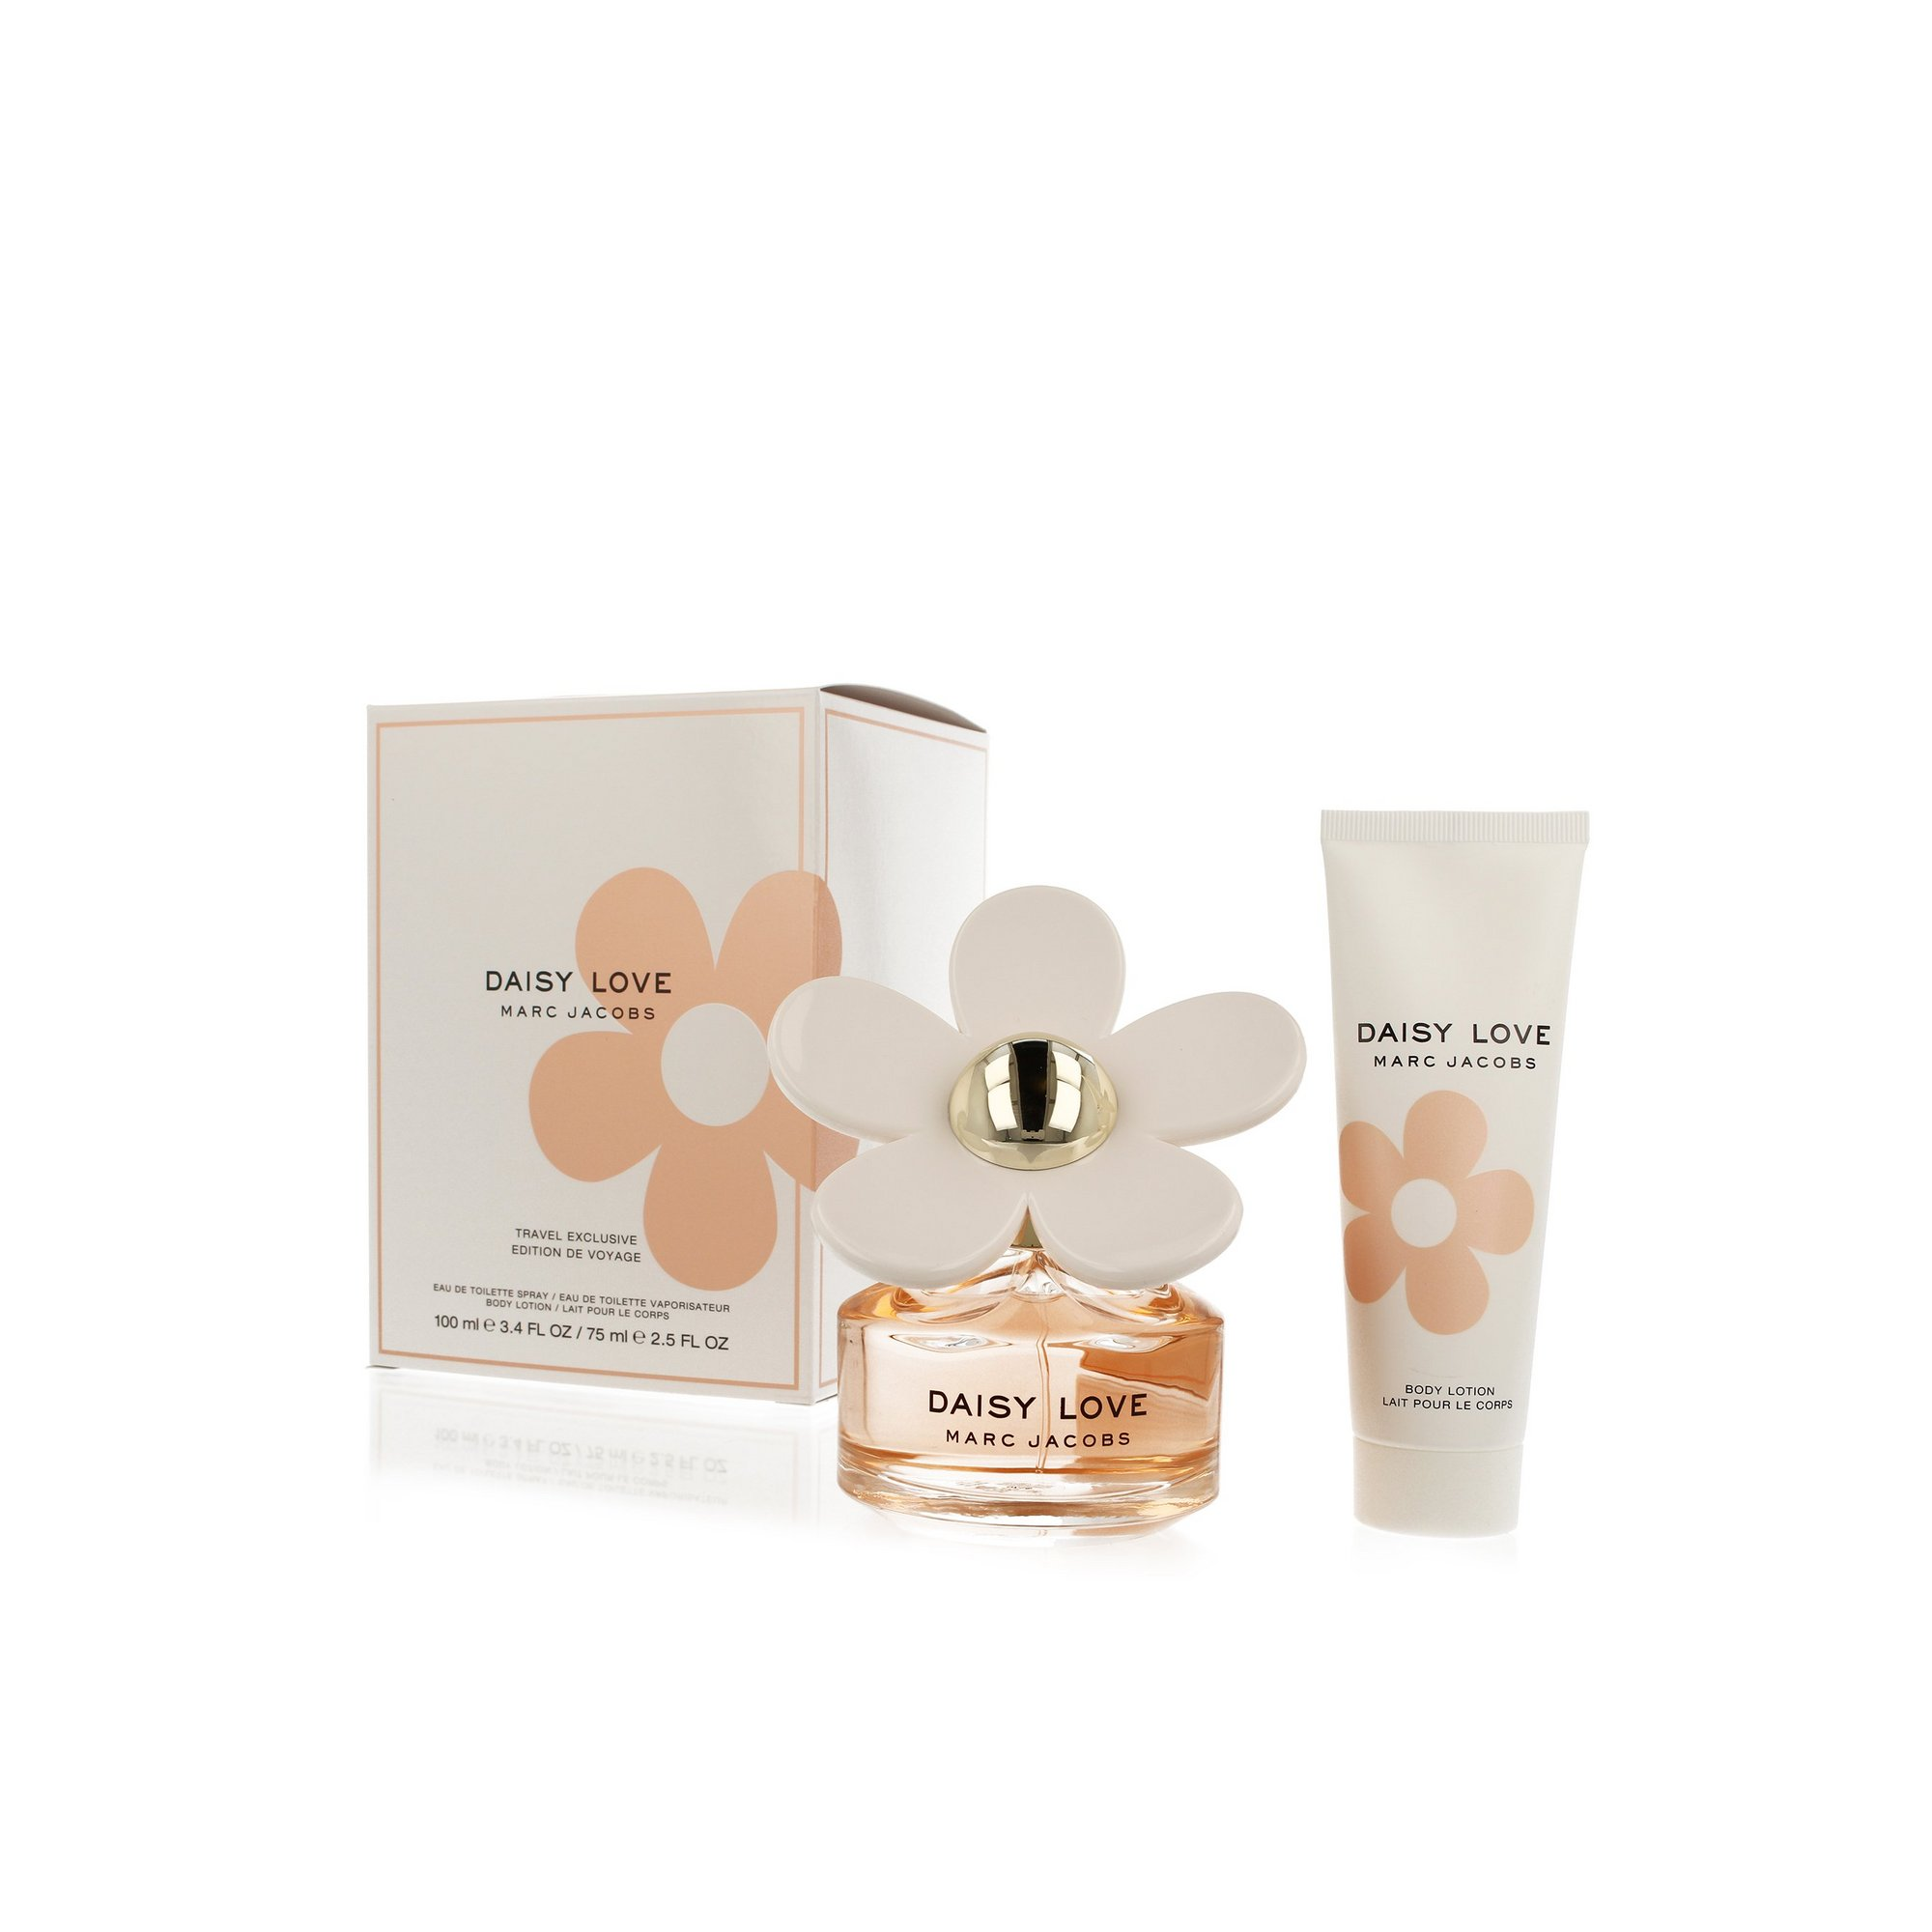 Image of Marc Jacobs Daisy Love 100ml EDT Gift Set